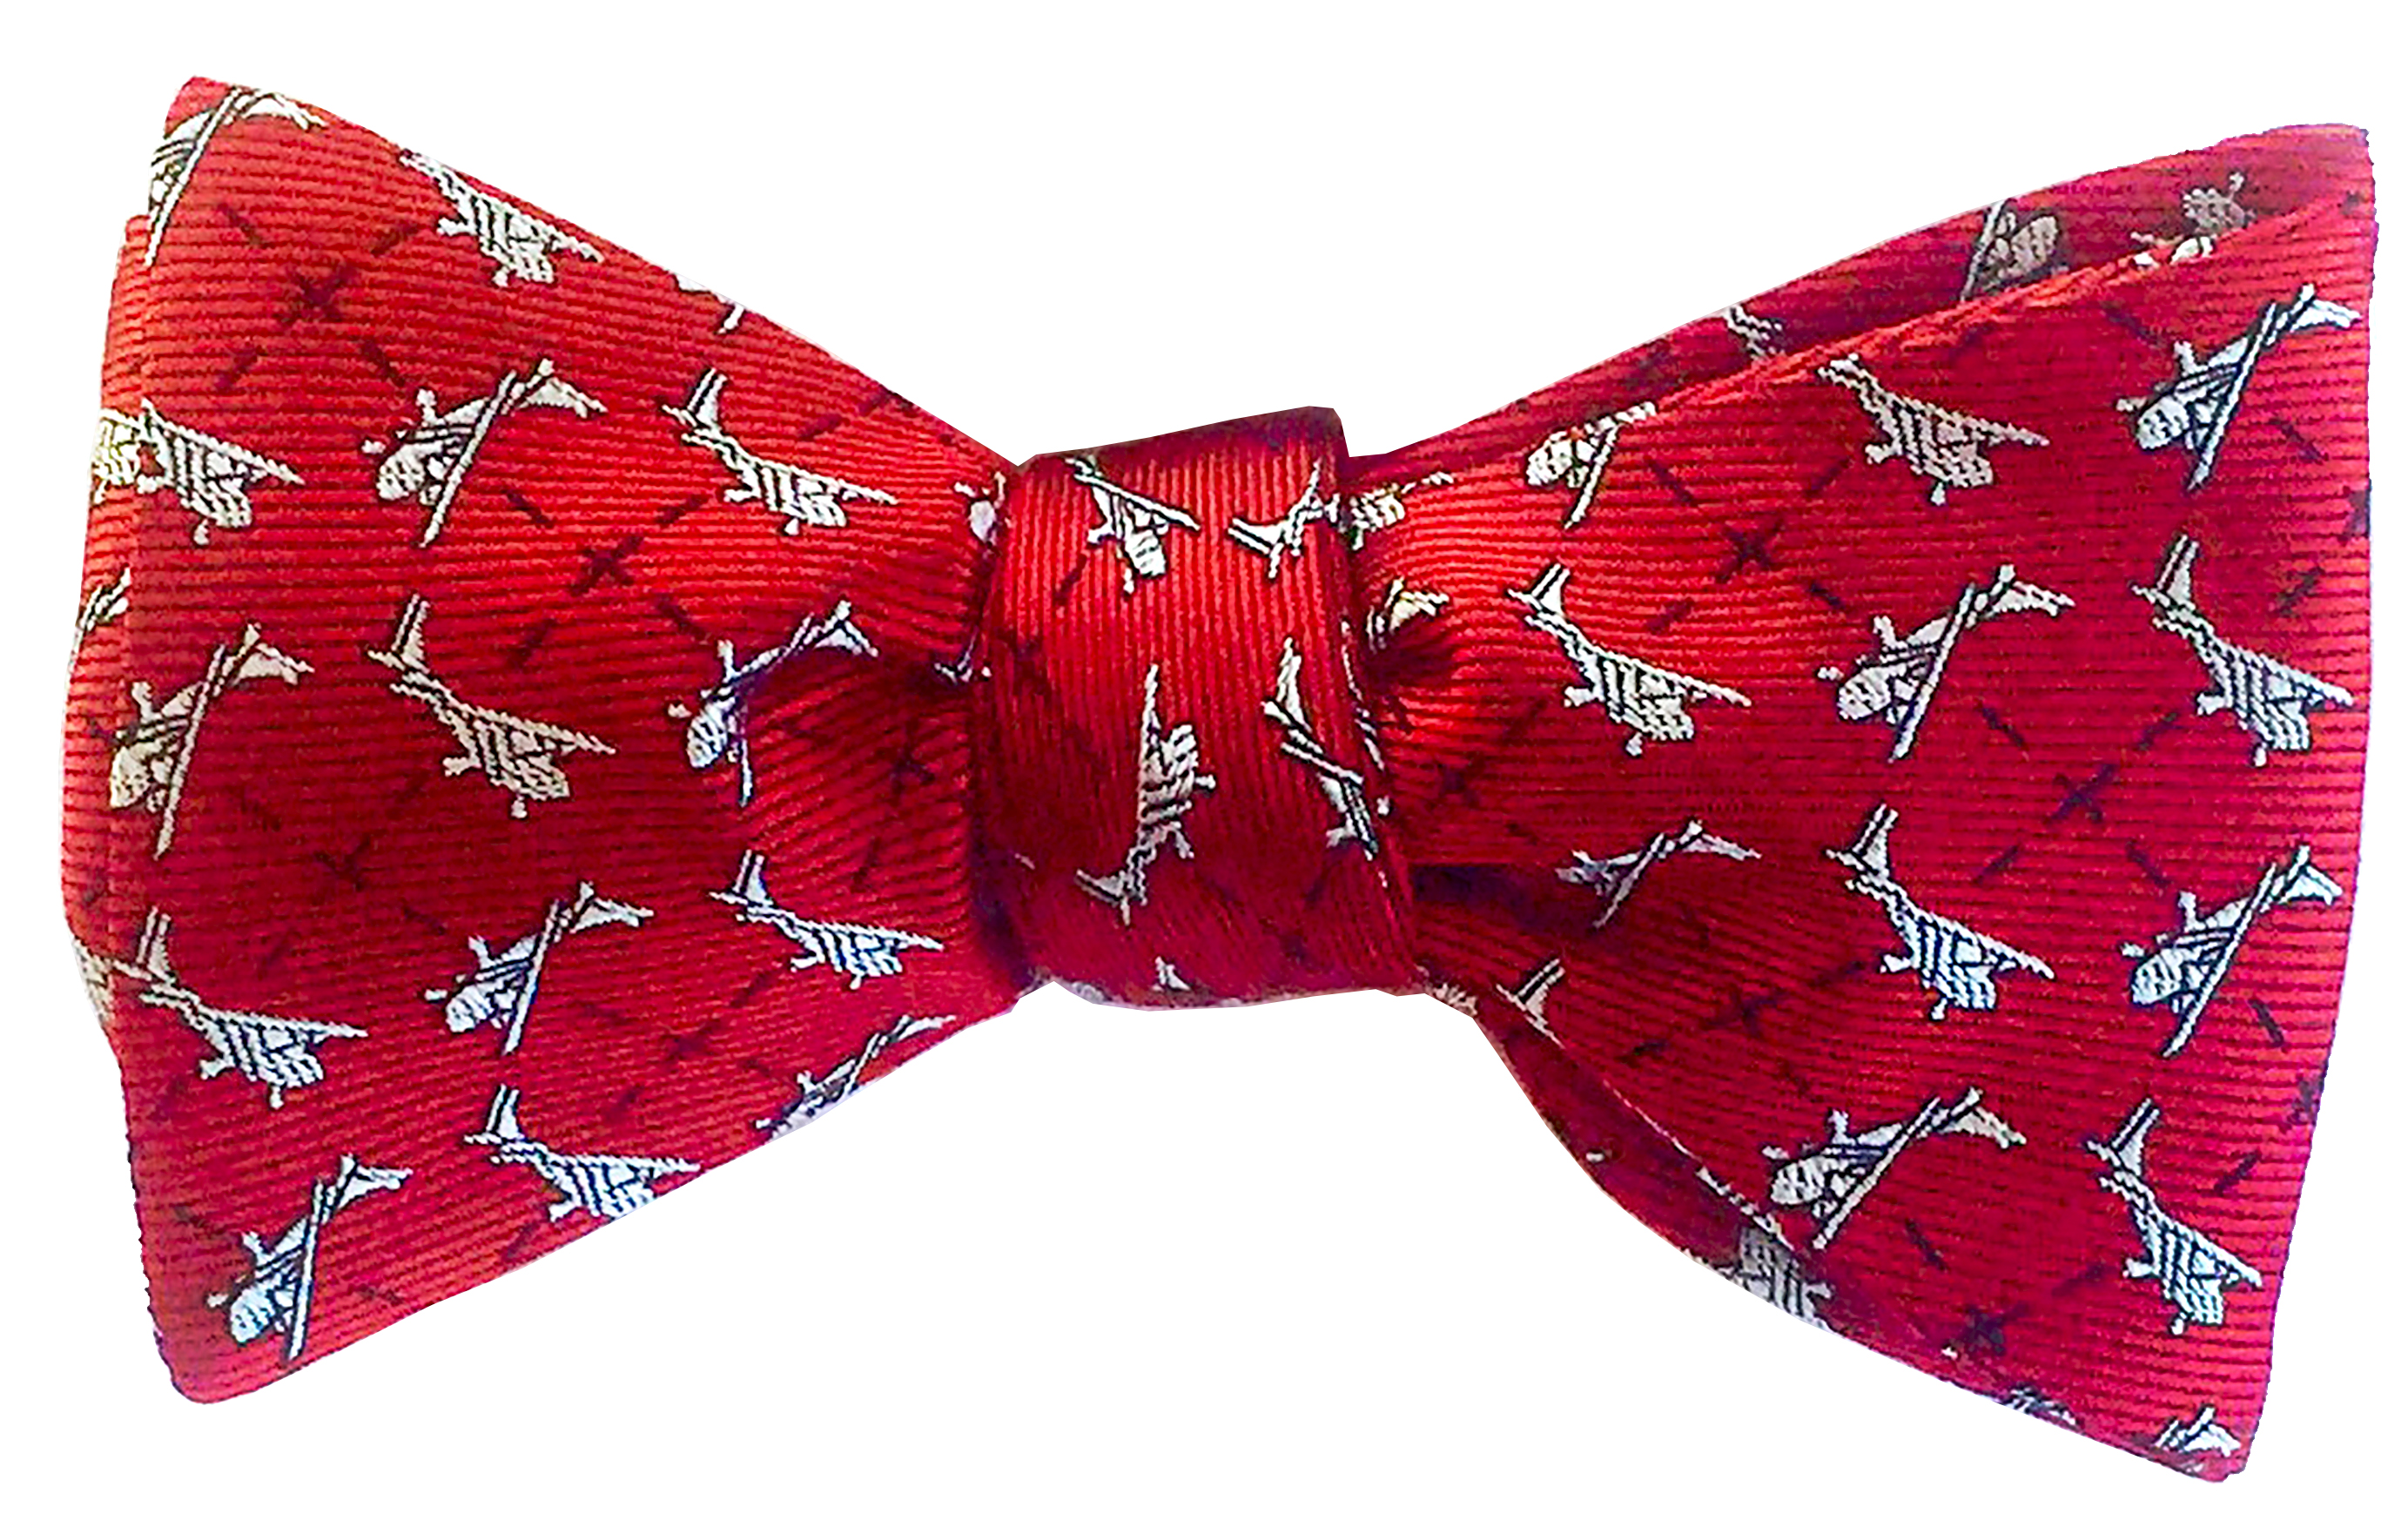 Cessna bow tie in red